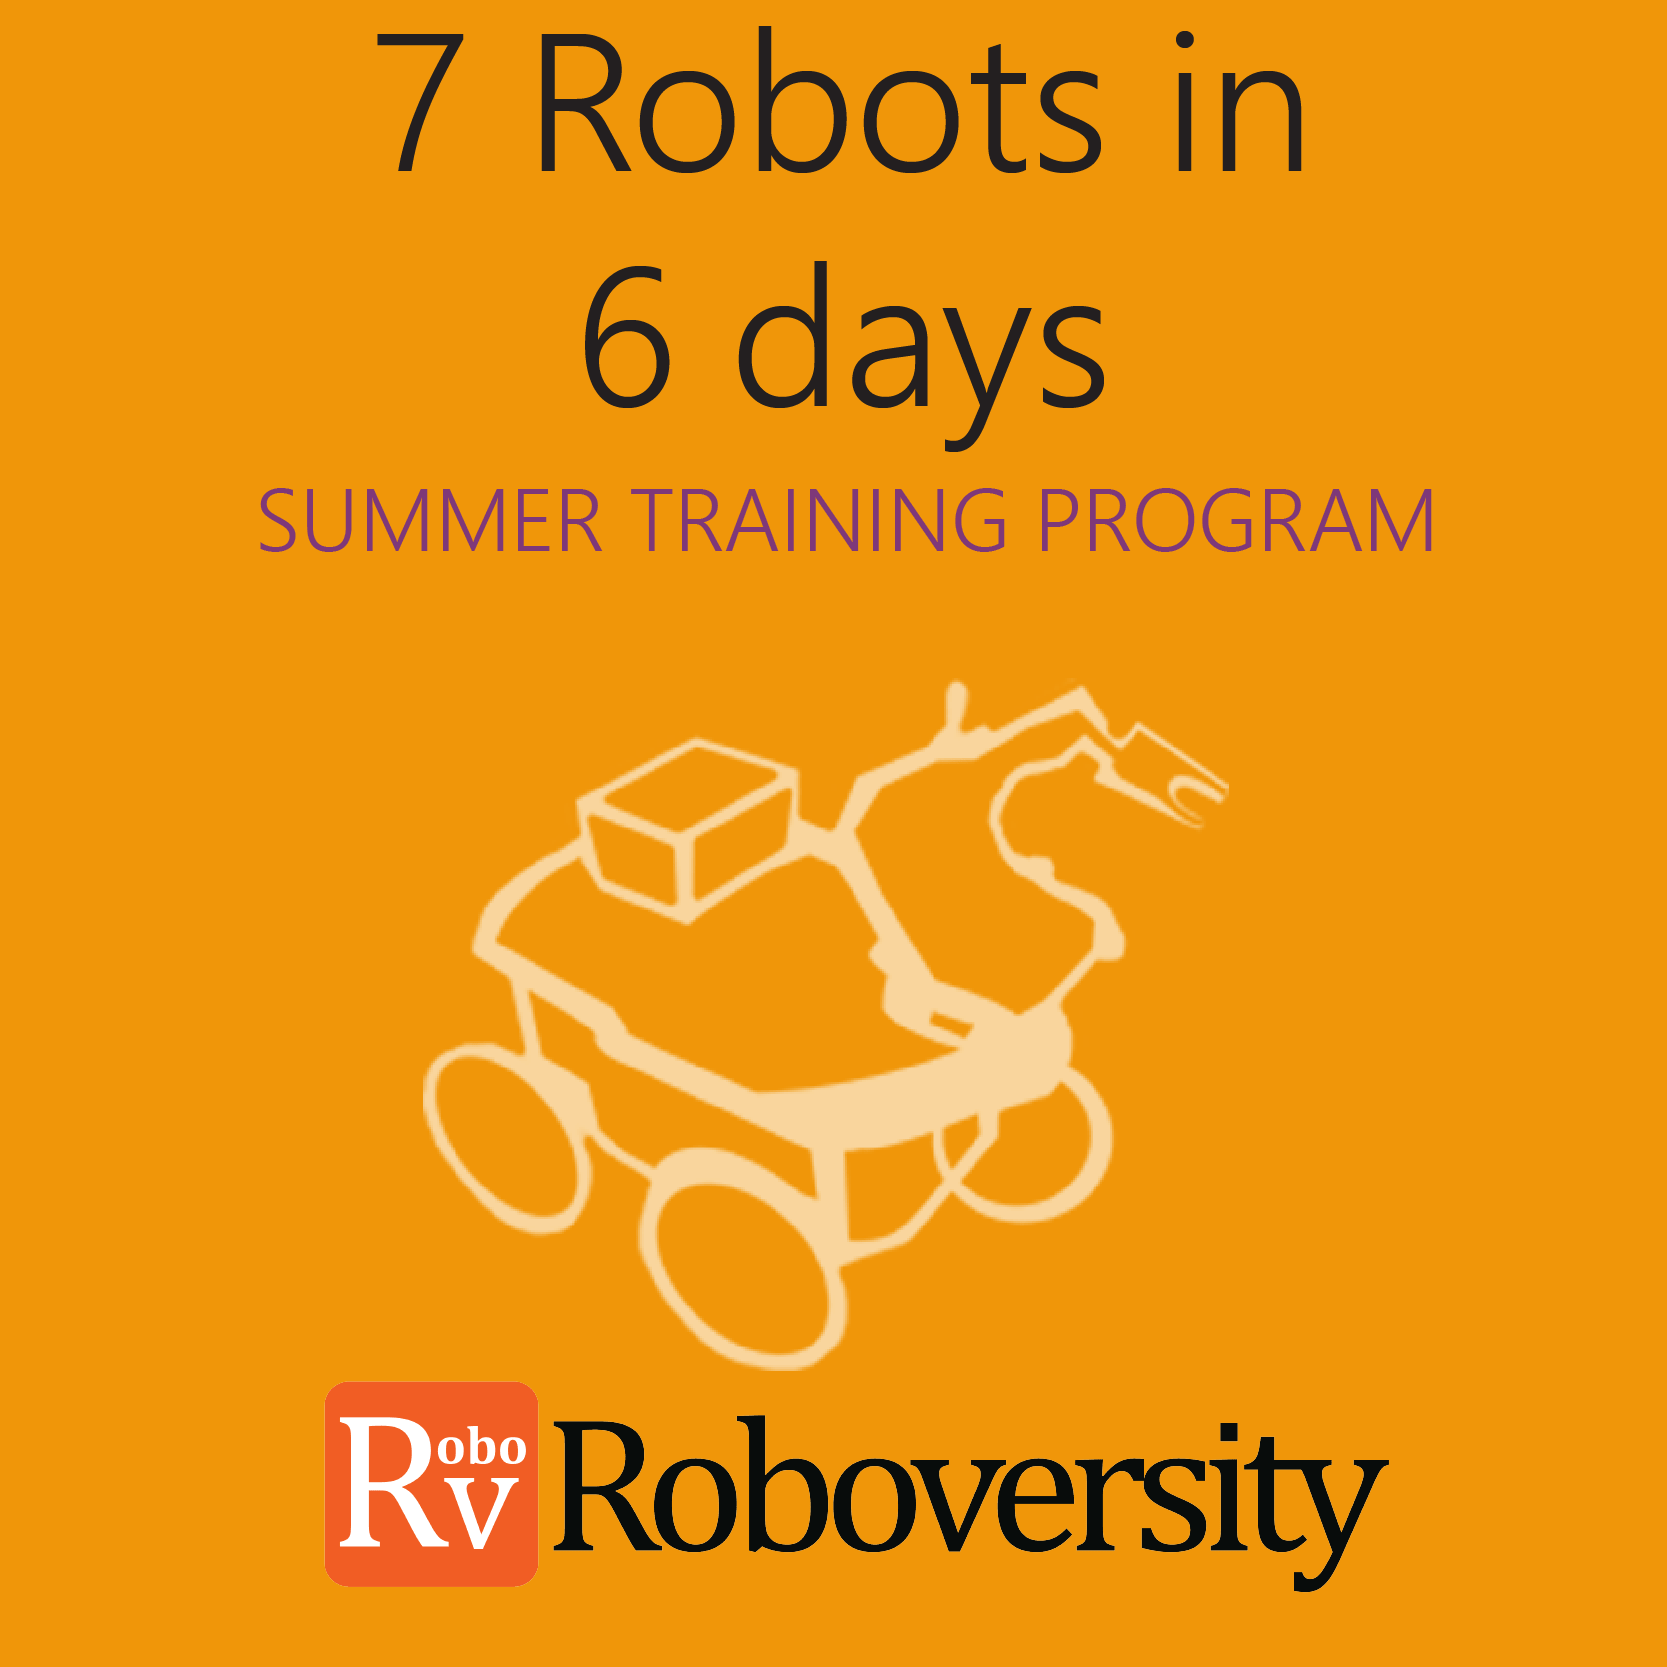 Summer Training Program in Robotics - 7 Robots in 6 Days